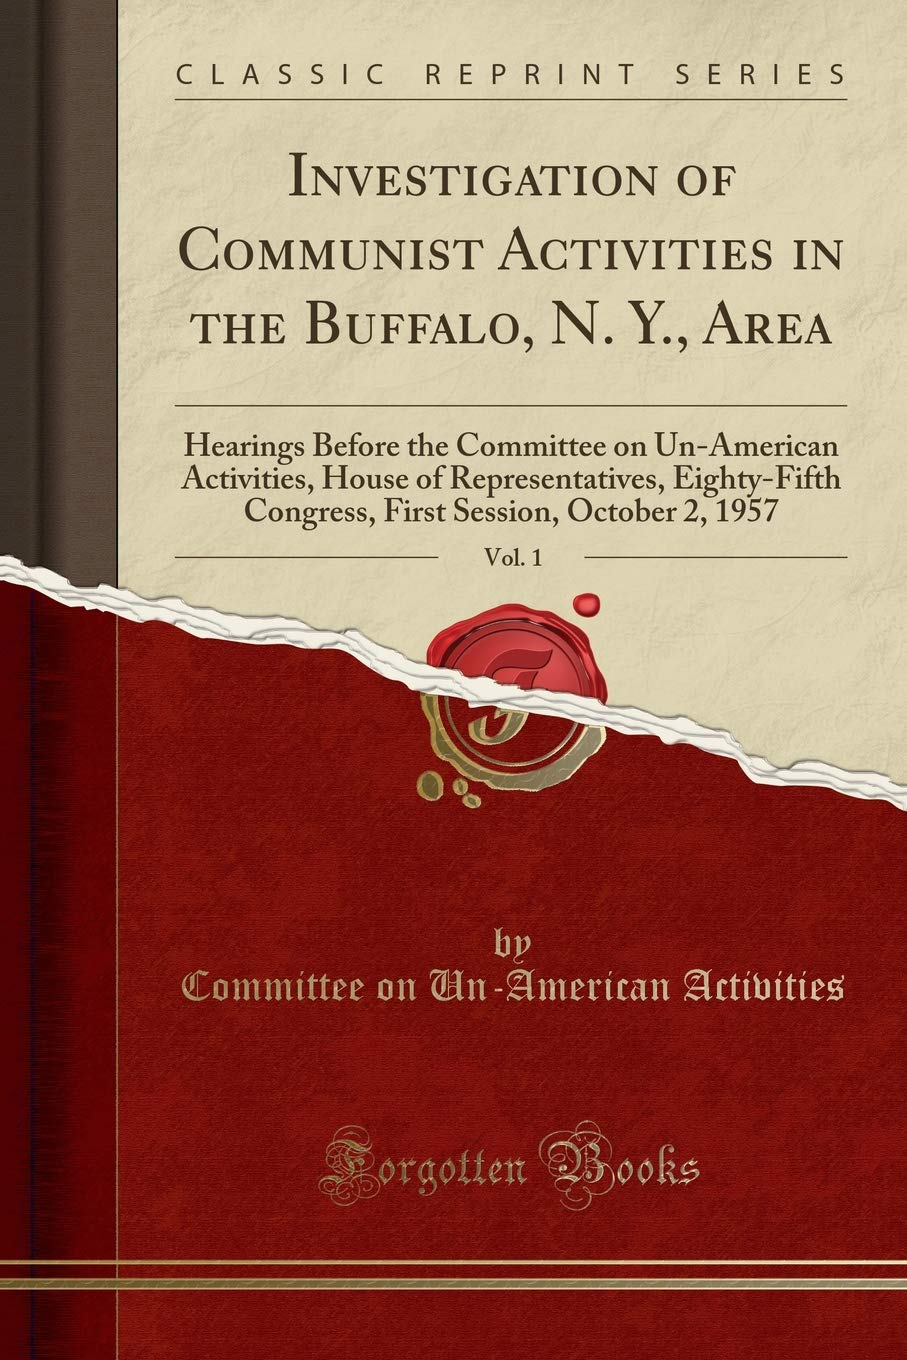 Investigation of Communist Activities in the Buffalo, N. Y., Area, Vol. 1: Hearings Before the Committee on Un-American Activities, House of ... Session, October 2, 1957 (Classic Reprint) ebook